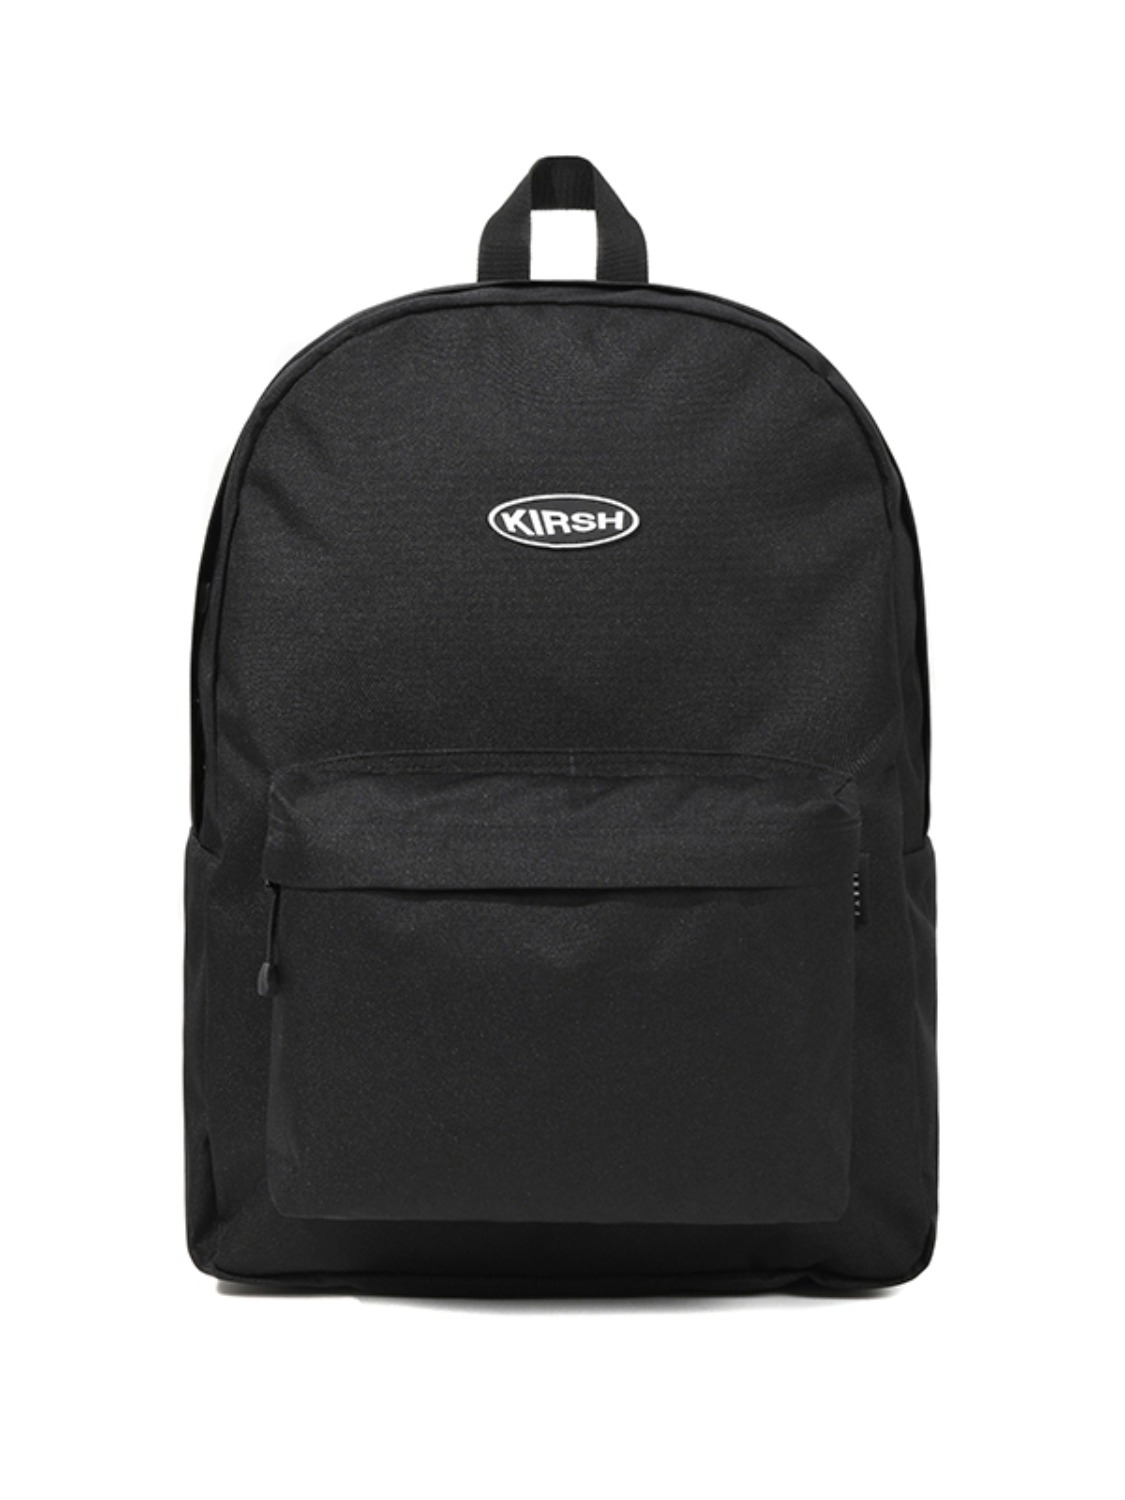 KIRSH POCKET CIRCLE LOGO BACKPACK JS [BLACK]